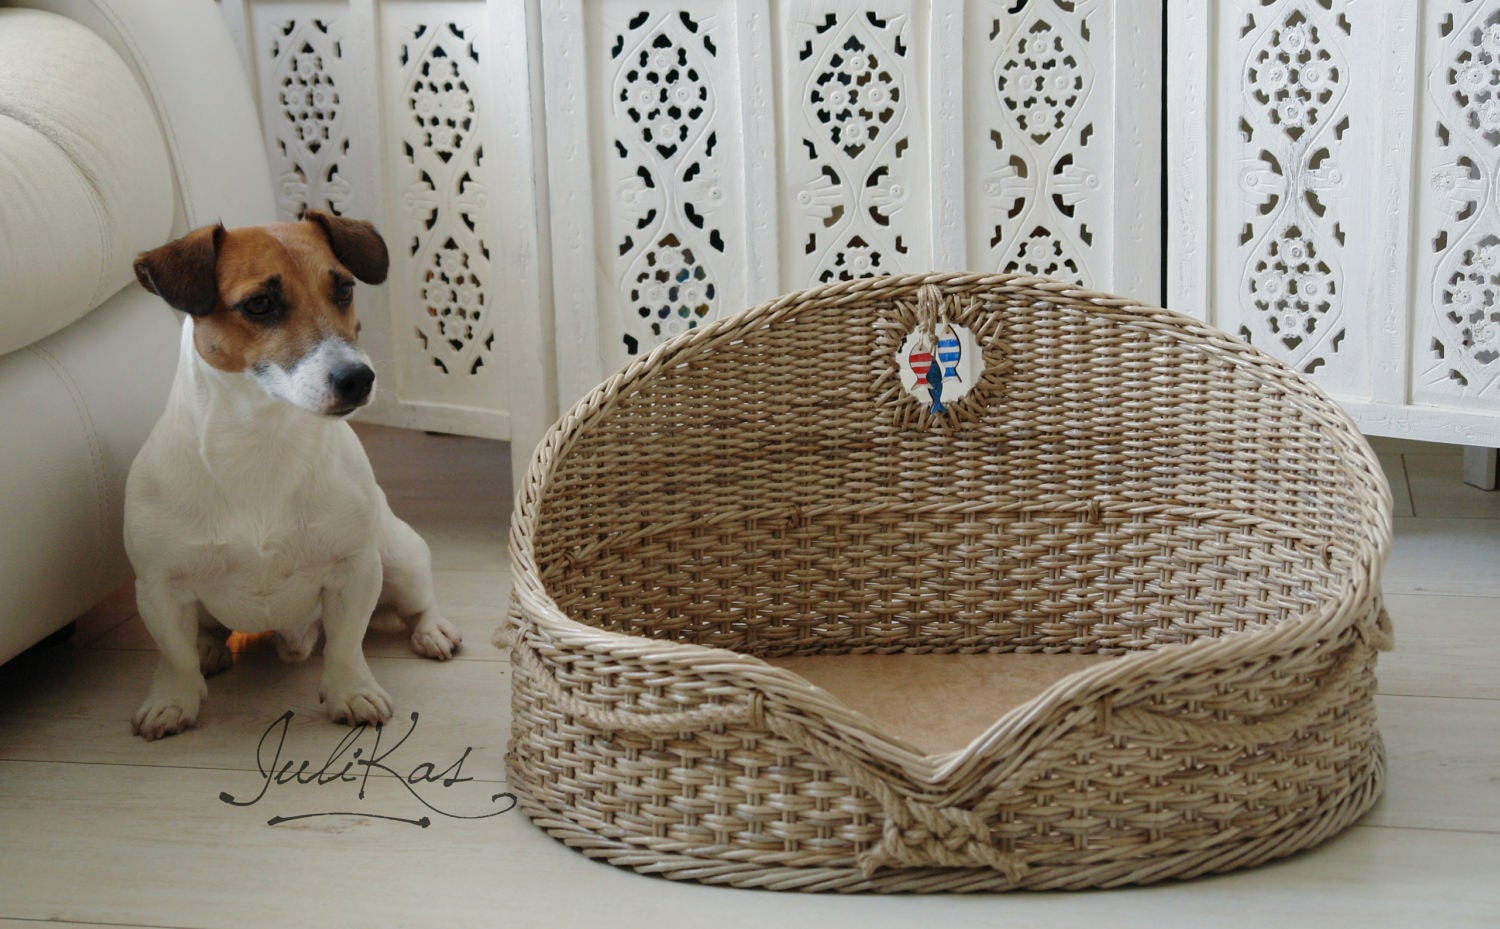 Dog crib for sale philippines - Basket For Pets Seaman S Hut Pet Bed Unique Pet Bed Wicker Dog Bed Wicker Pet House Jack Russell Gifts Sailor Dog Pet Basket